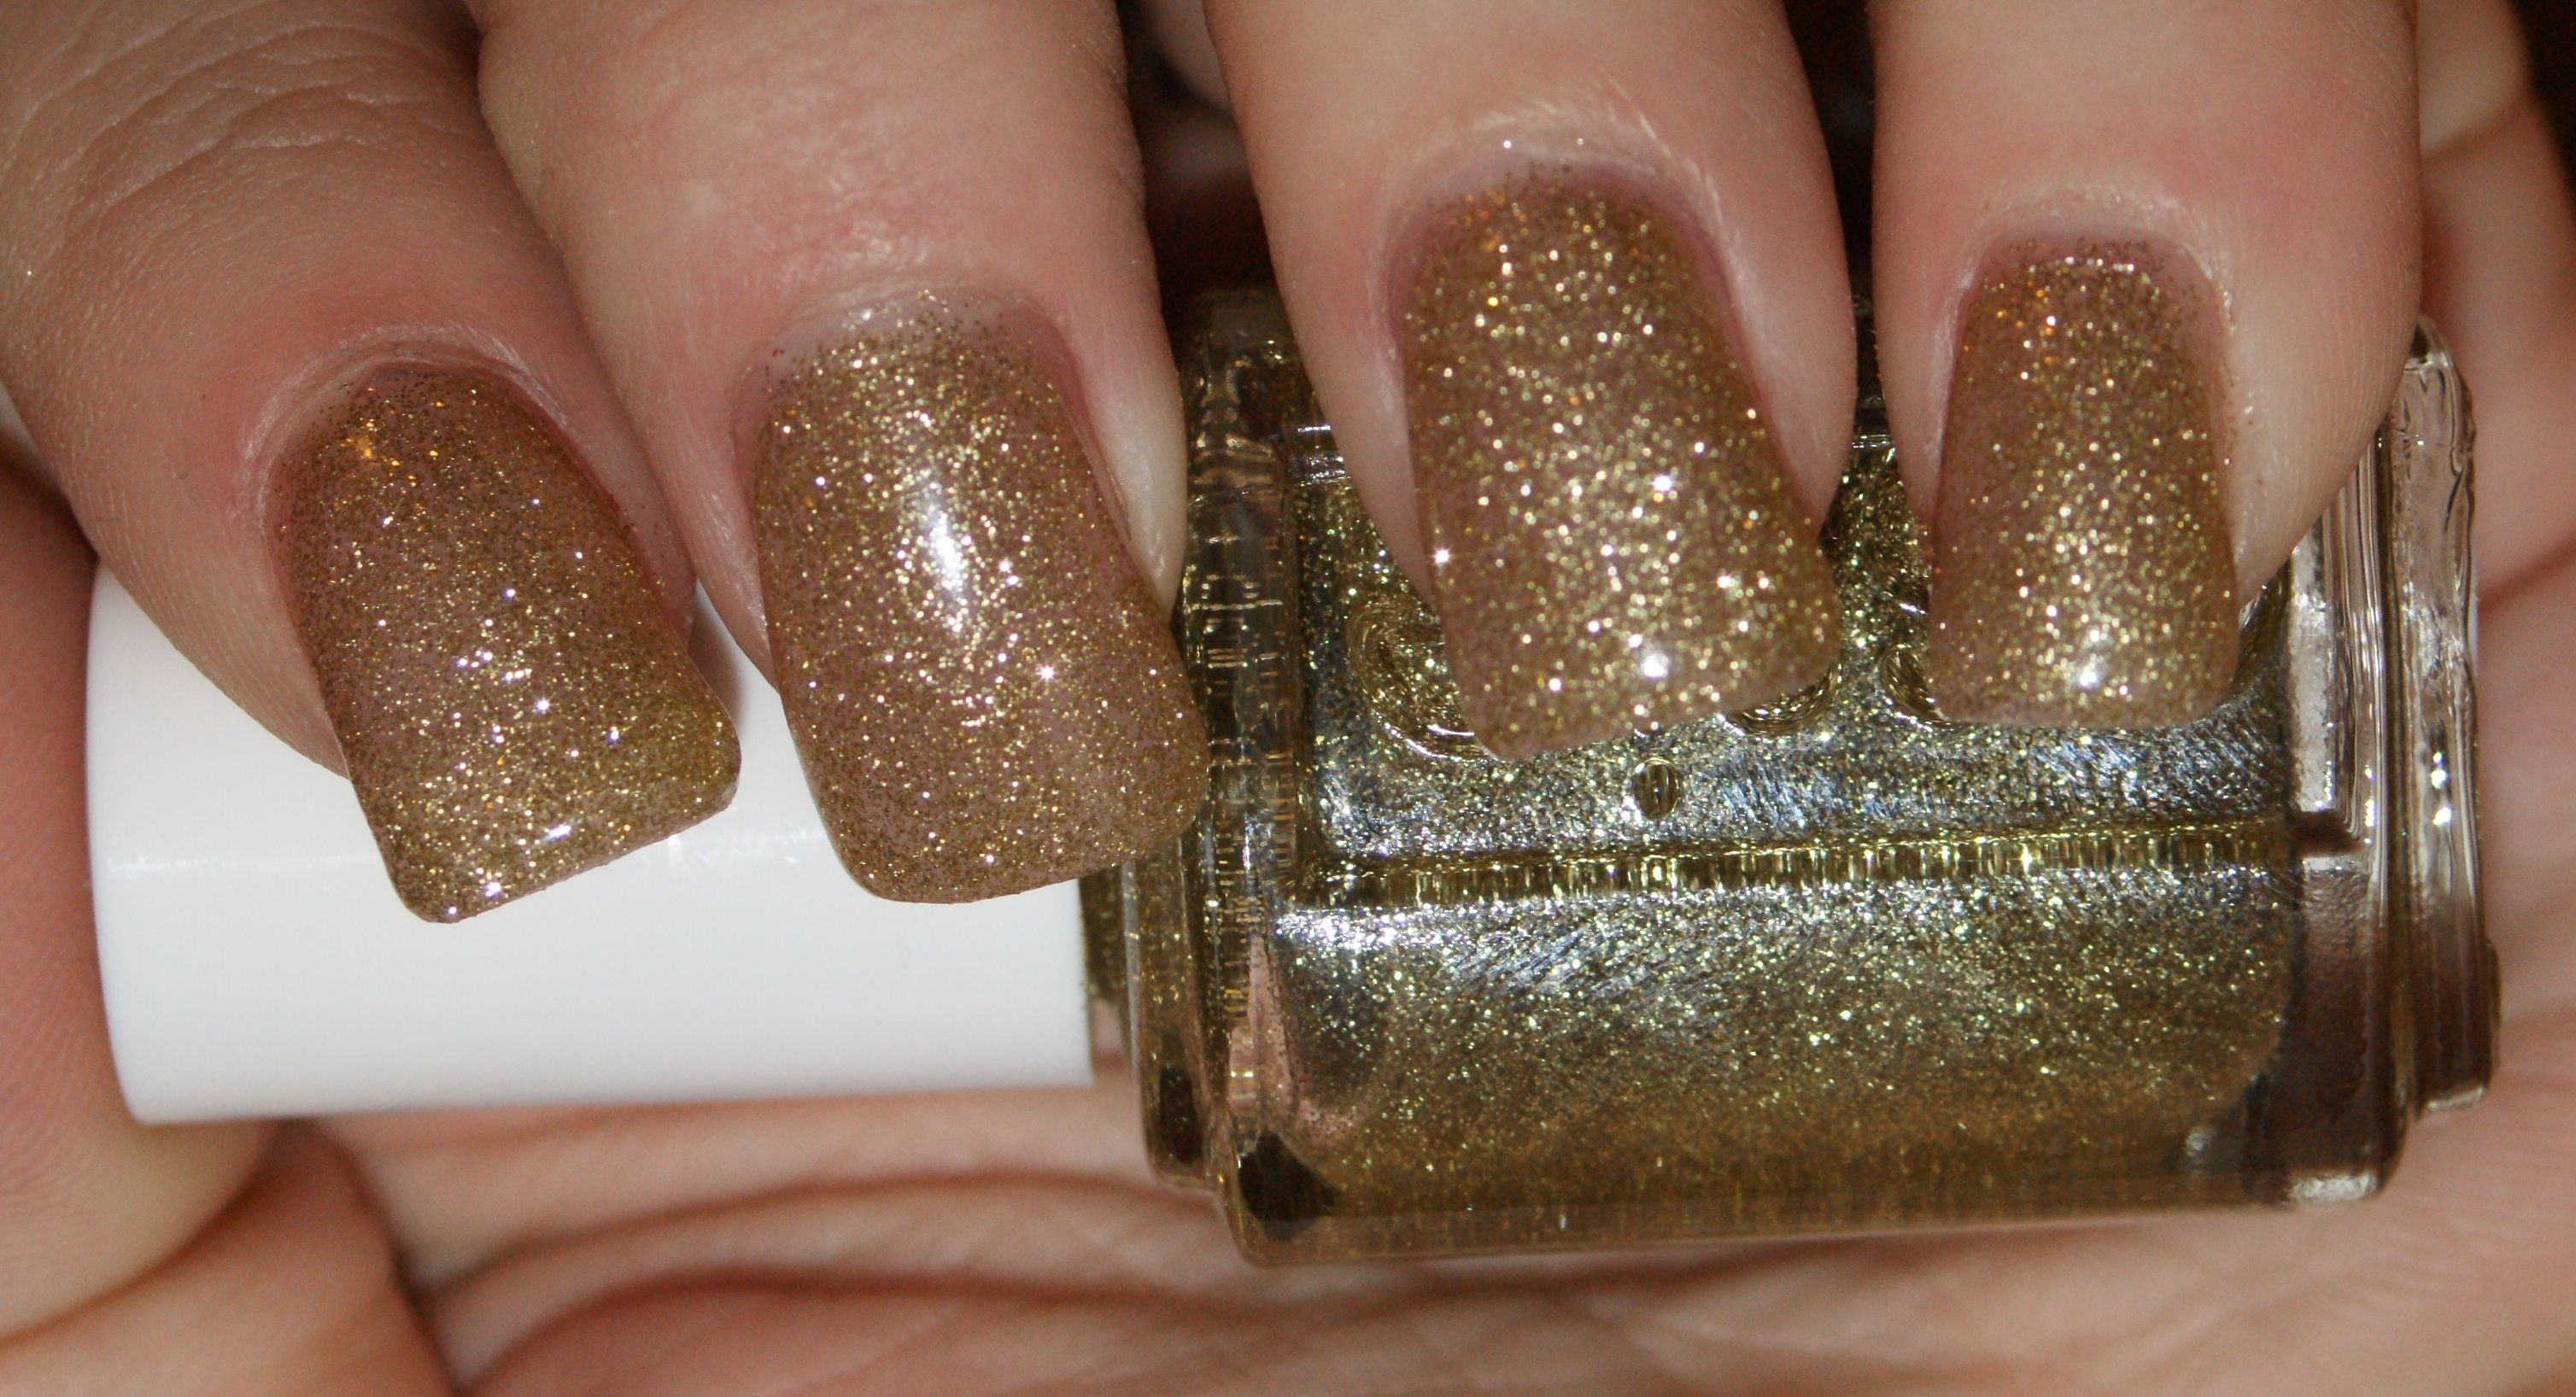 Essie LE Cosmo's PSS Shimmer